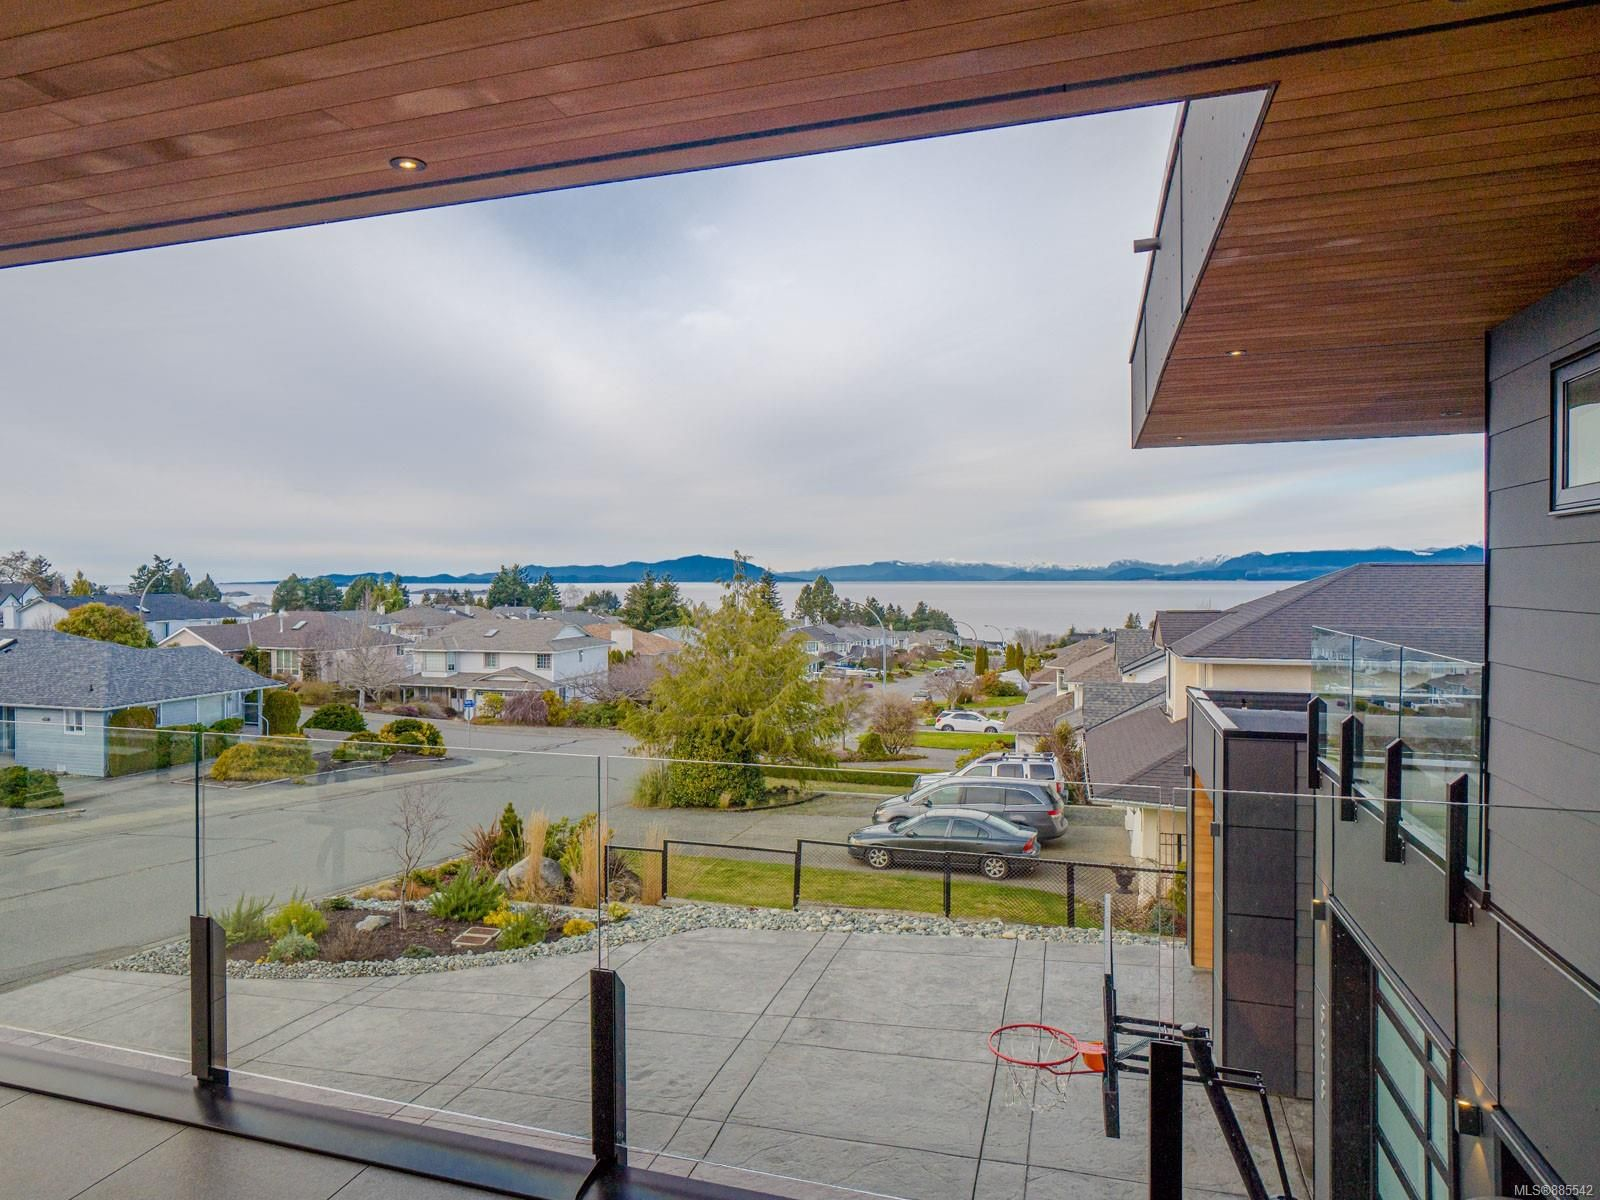 Photo 48: Photos: 6278 Invermere Rd in : Na North Nanaimo House for sale (Nanaimo)  : MLS®# 885542